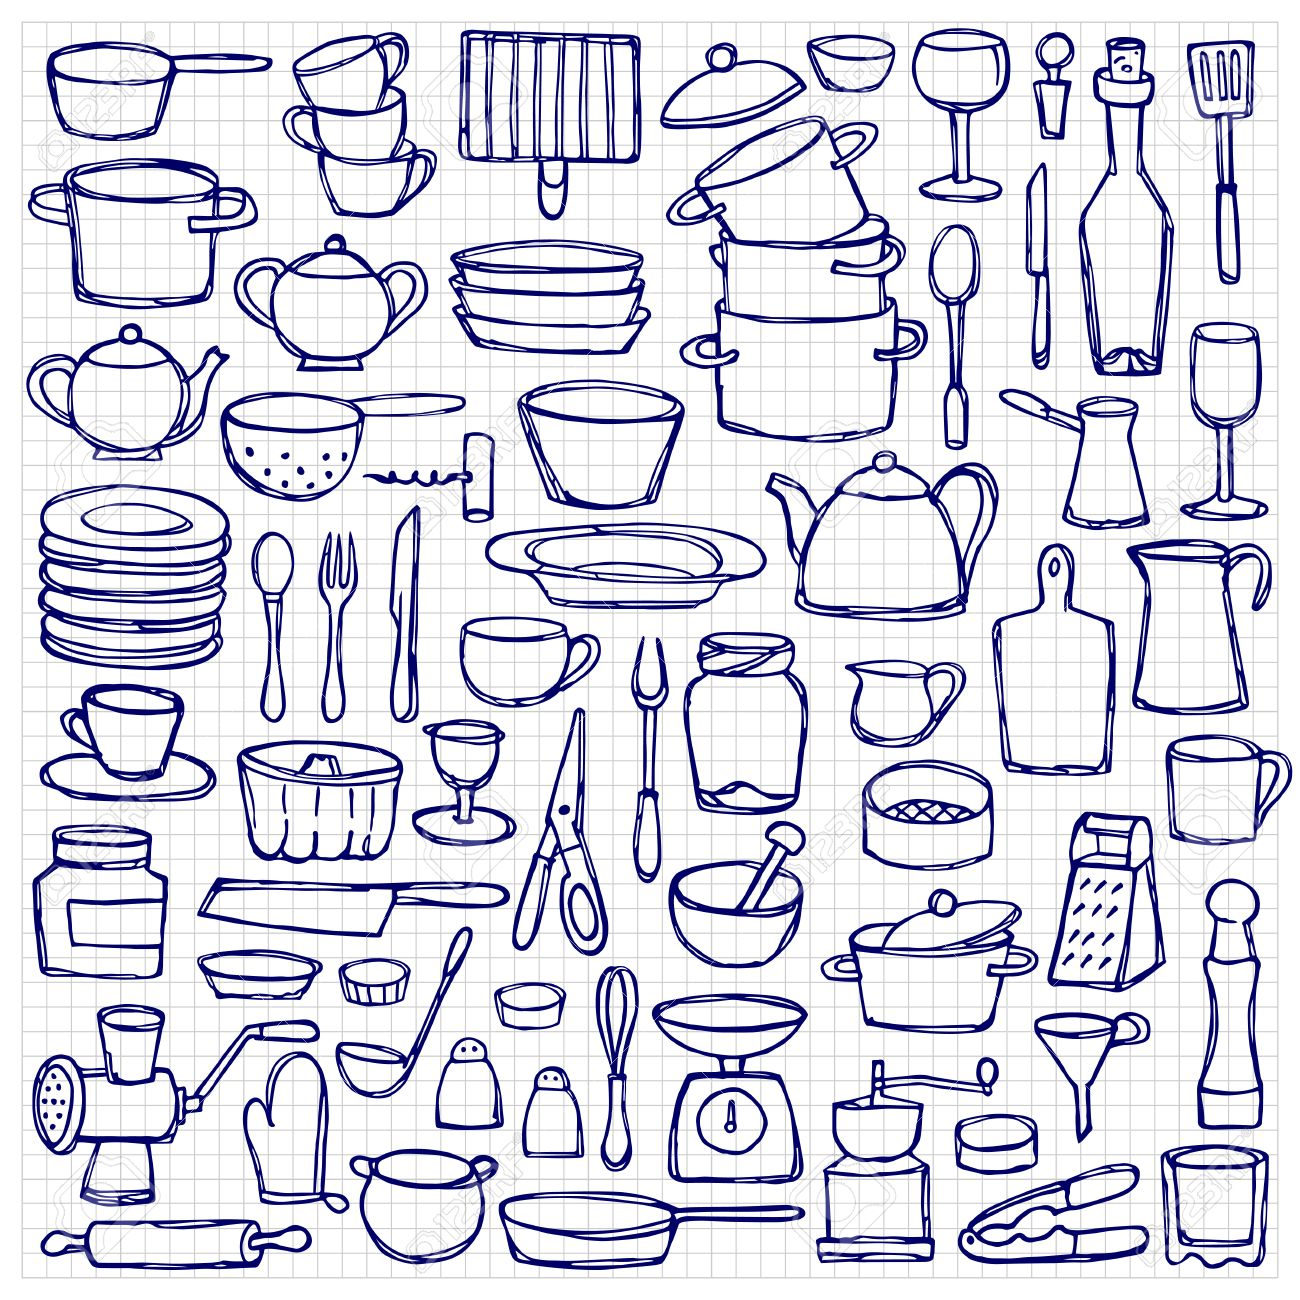 Kitchen Doodles Coloring Page Sketch Of Kitchen Objects And